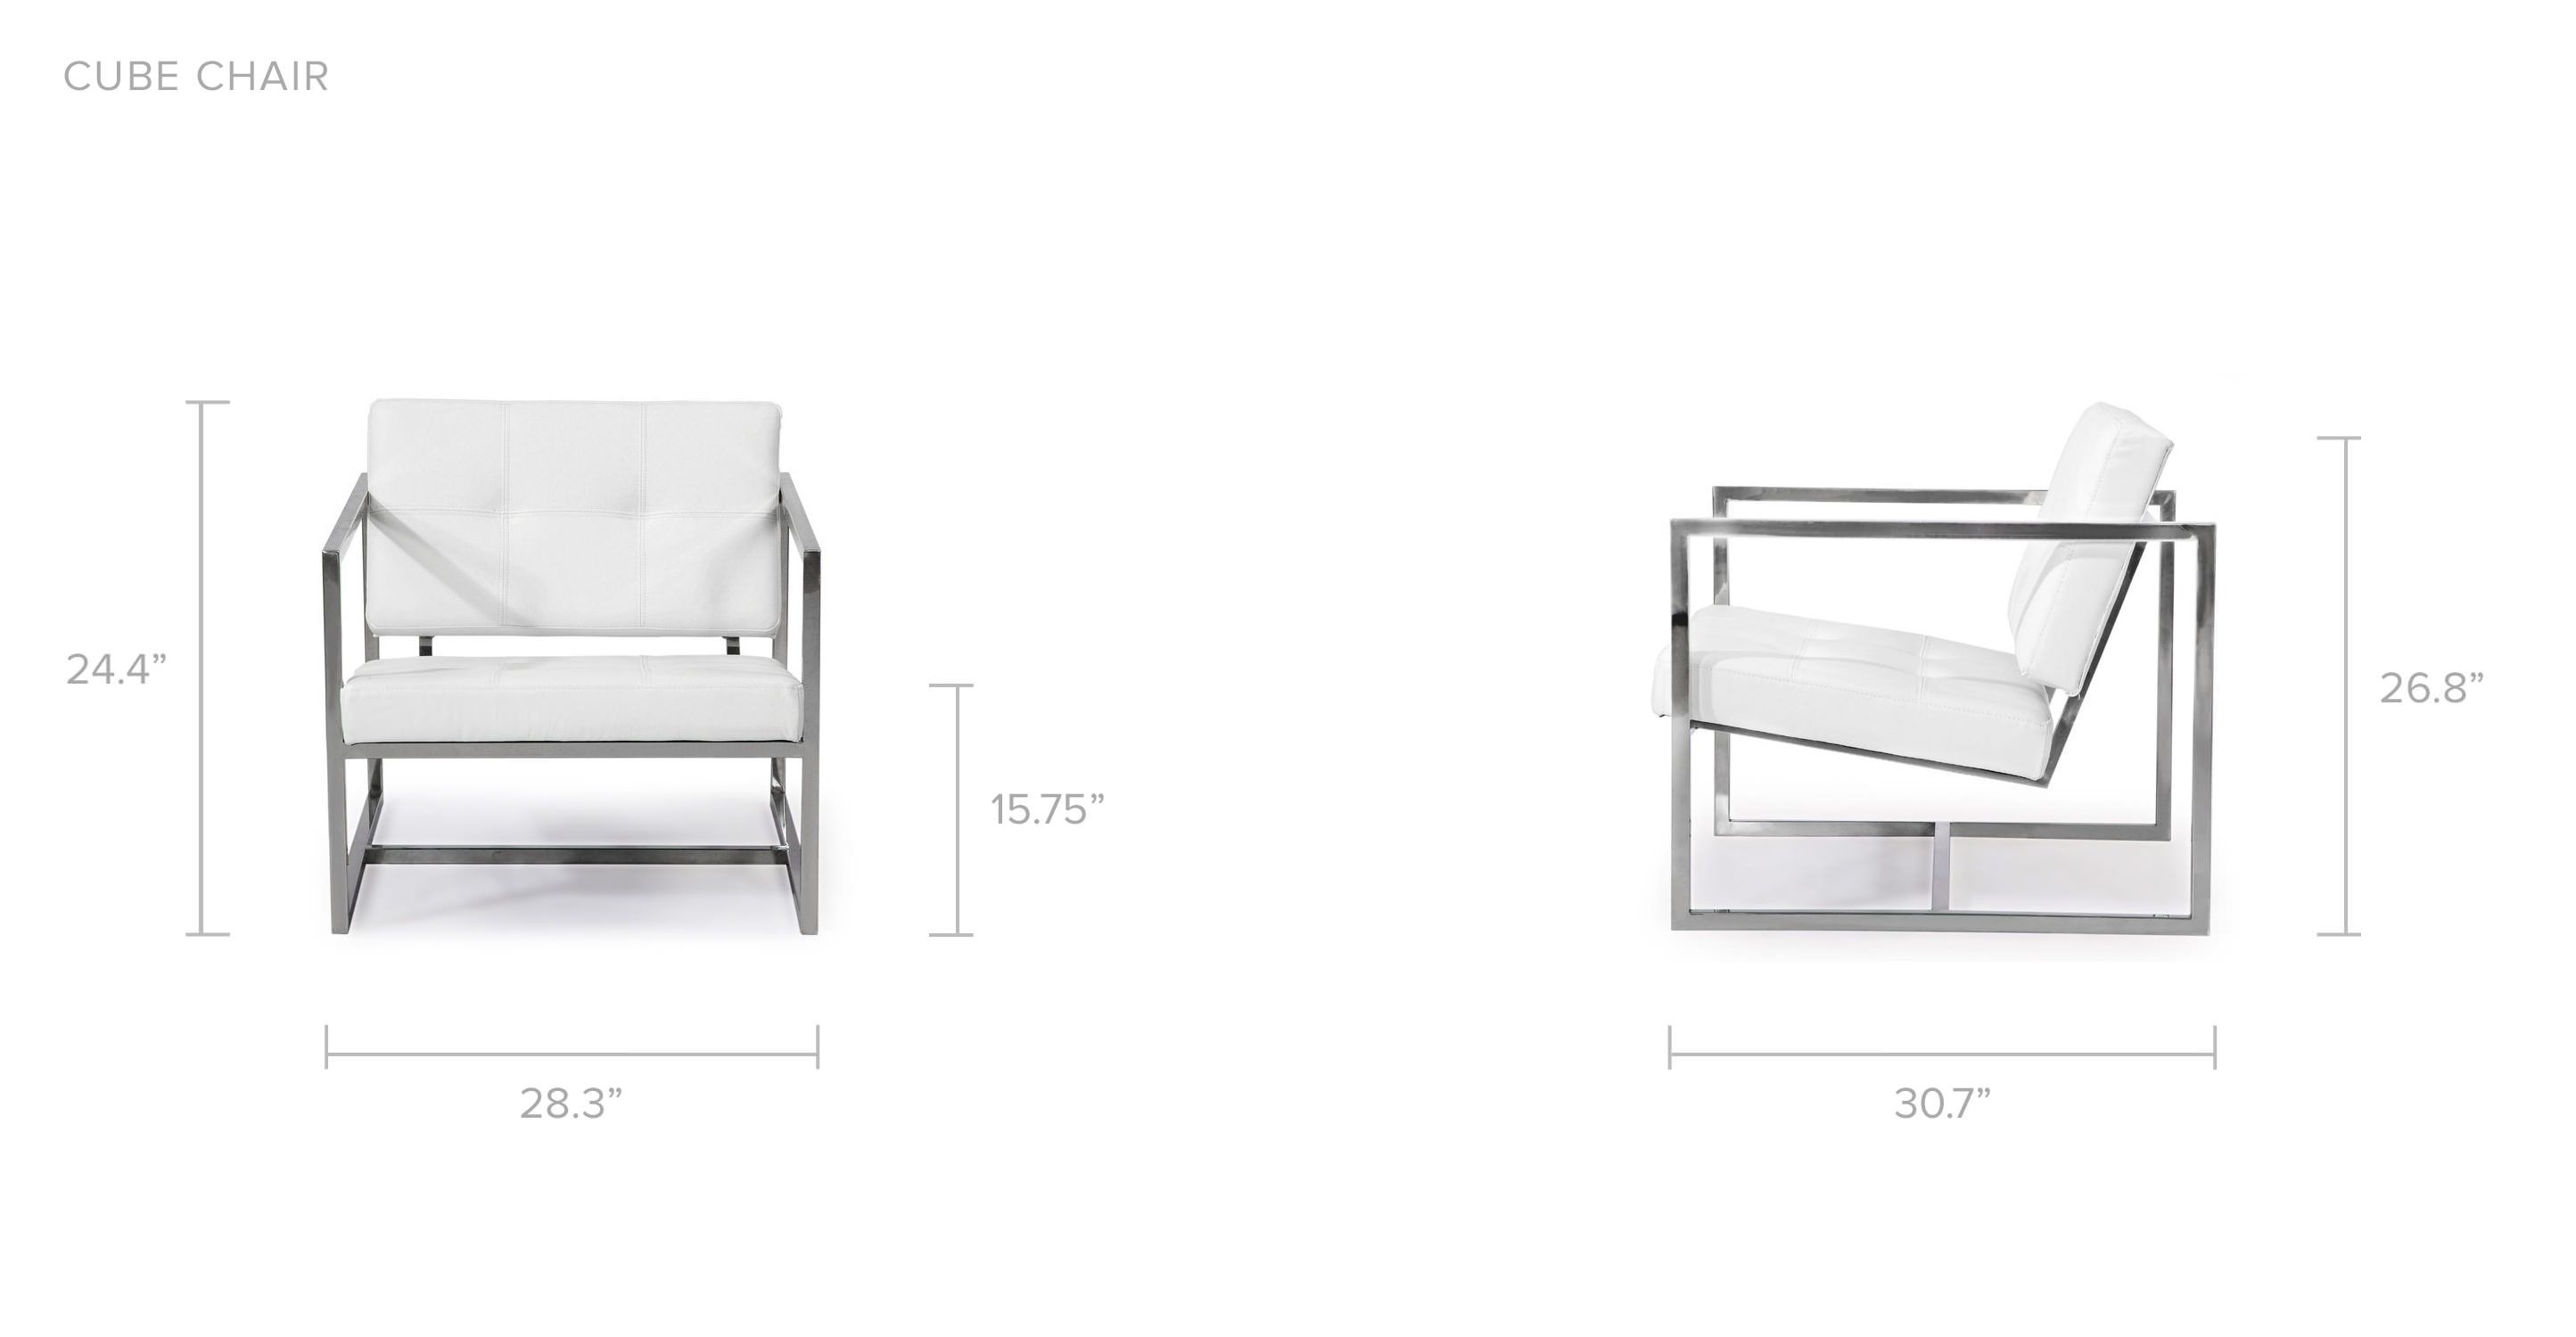 drawings-cube-chair.jpg